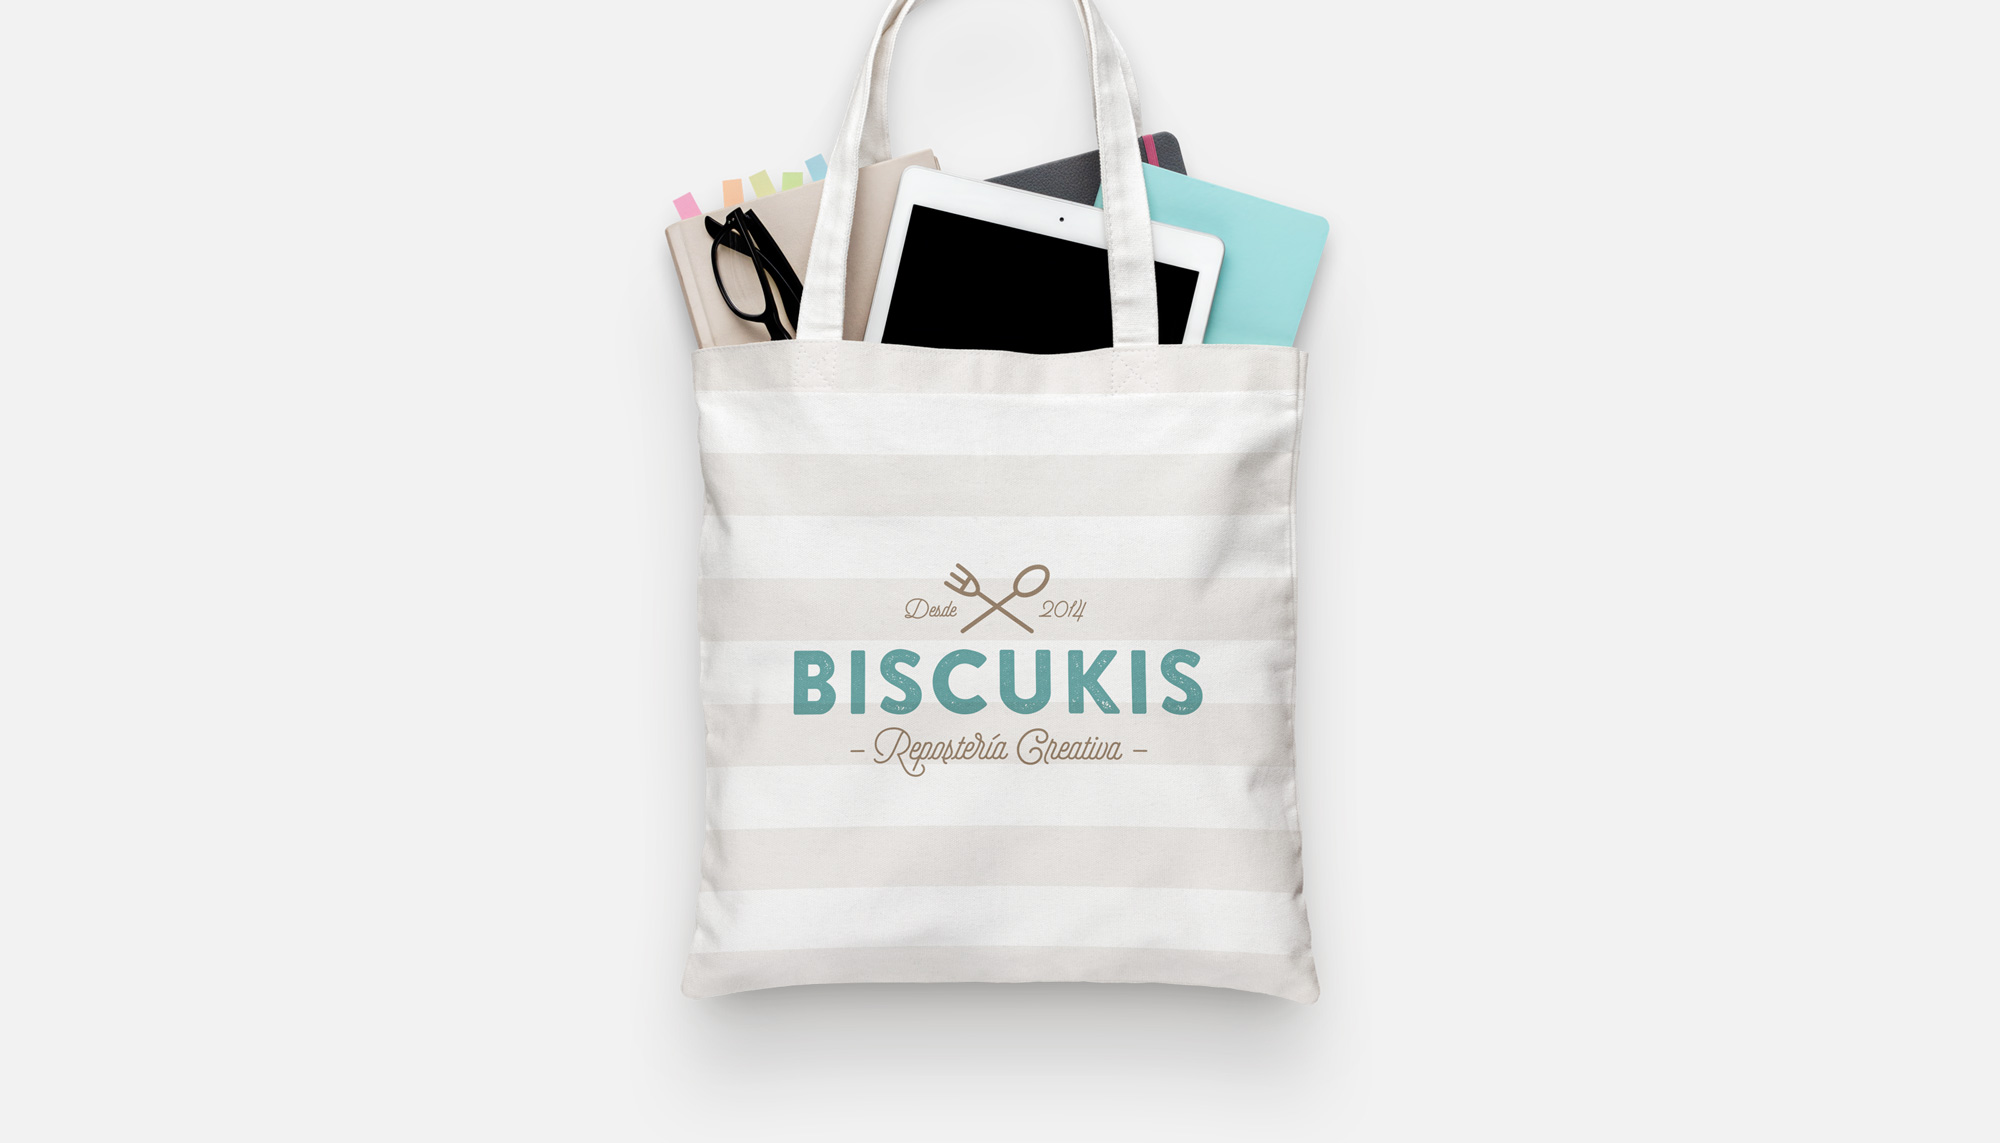 biscukis-05